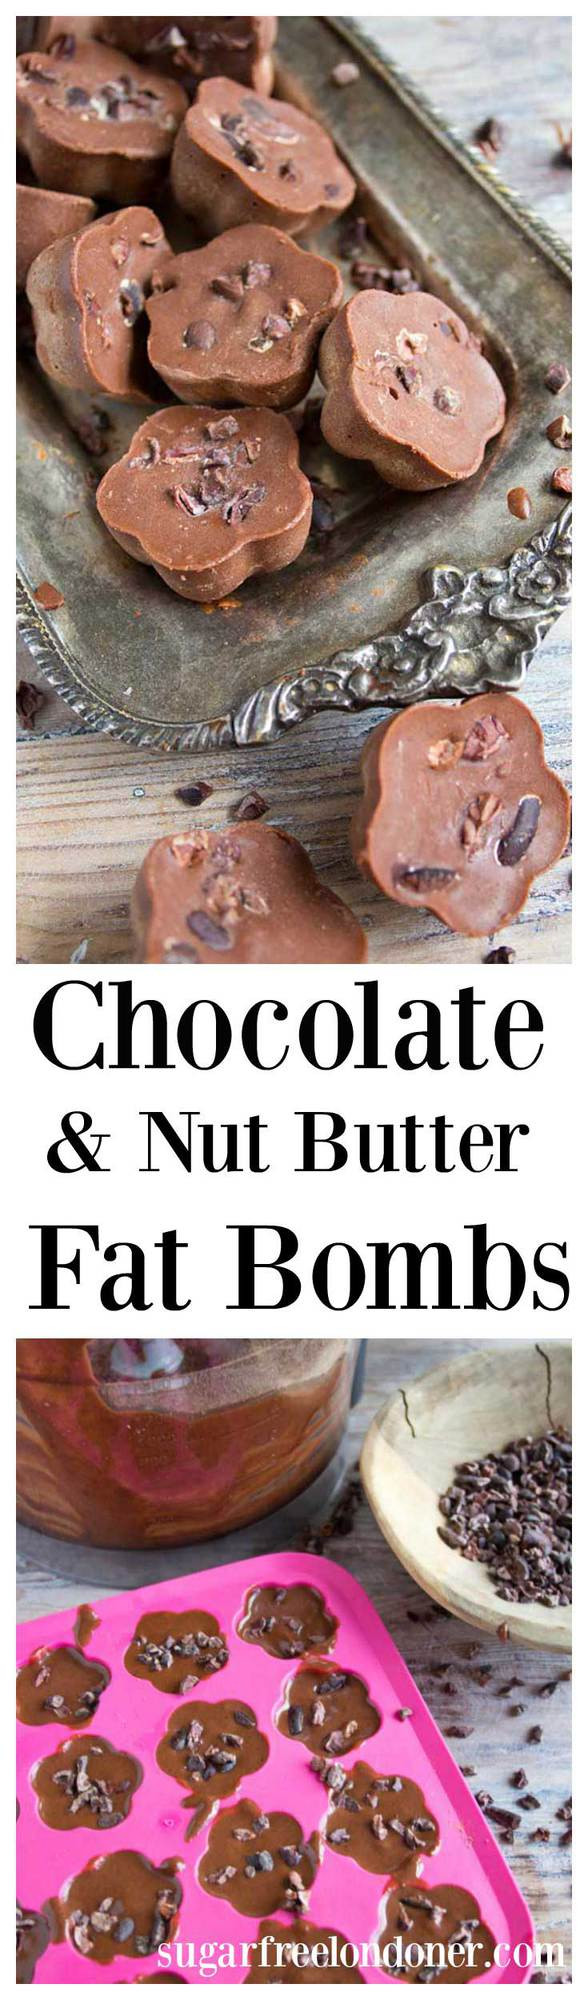 Cacao nut butter fat bombs are a great way to satisfy a sweet craving. They are packed with healthy fats and a delicious source of energy. #fatbombs #ketosnack